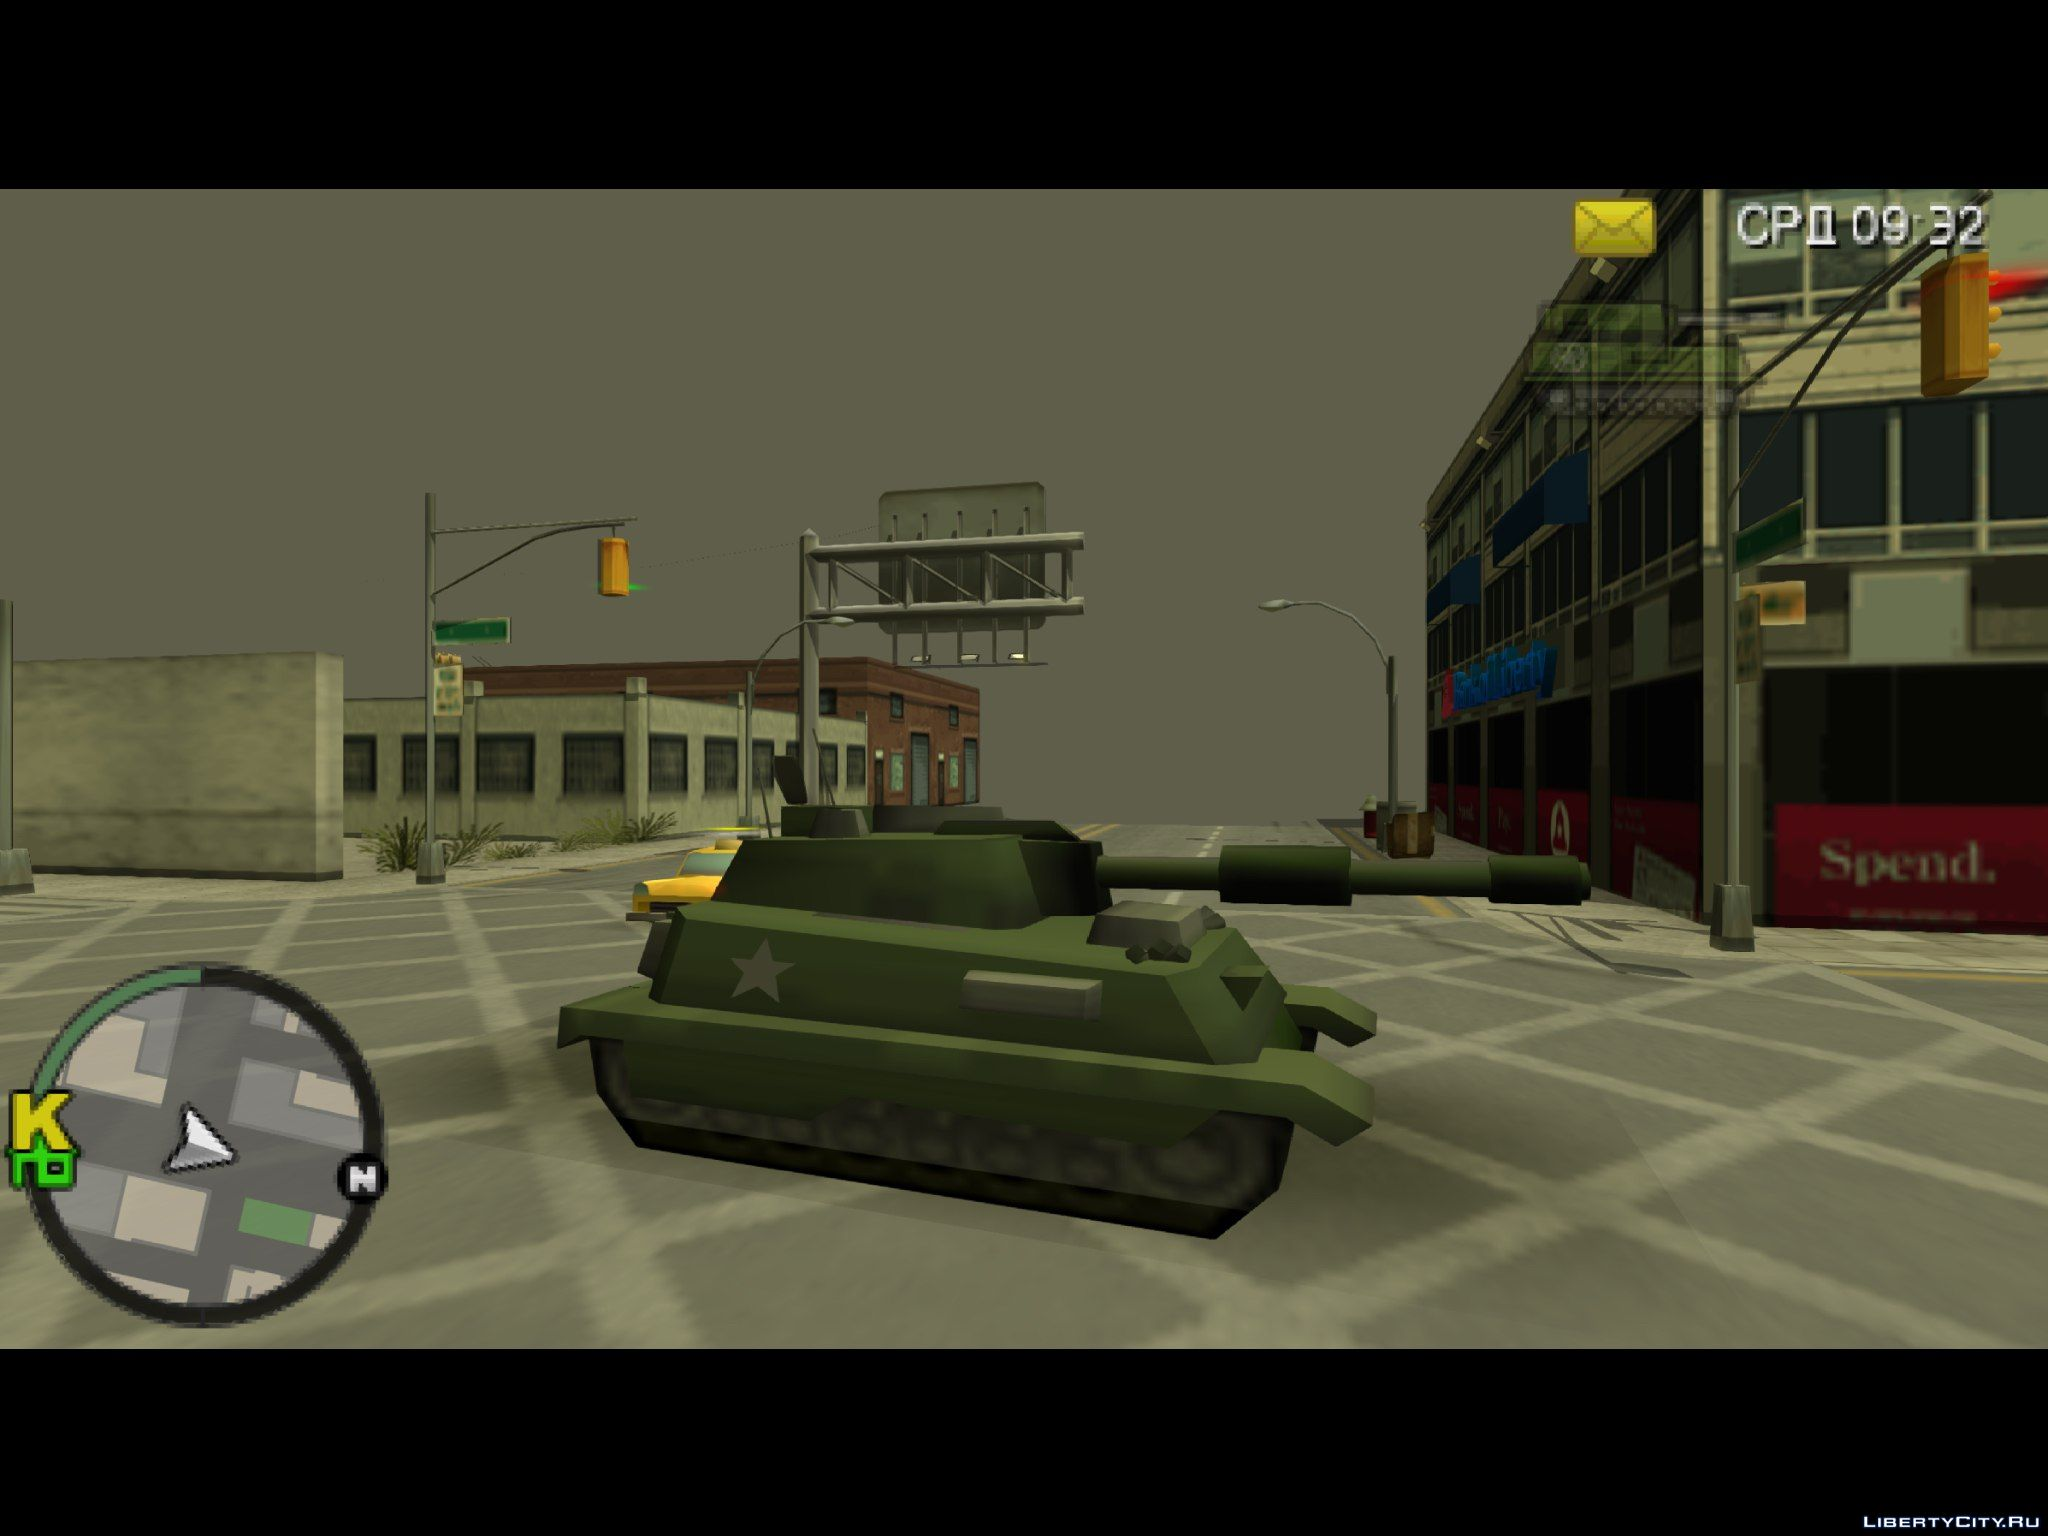 Files for GTA Chinatown Wars: cars, mods, skins